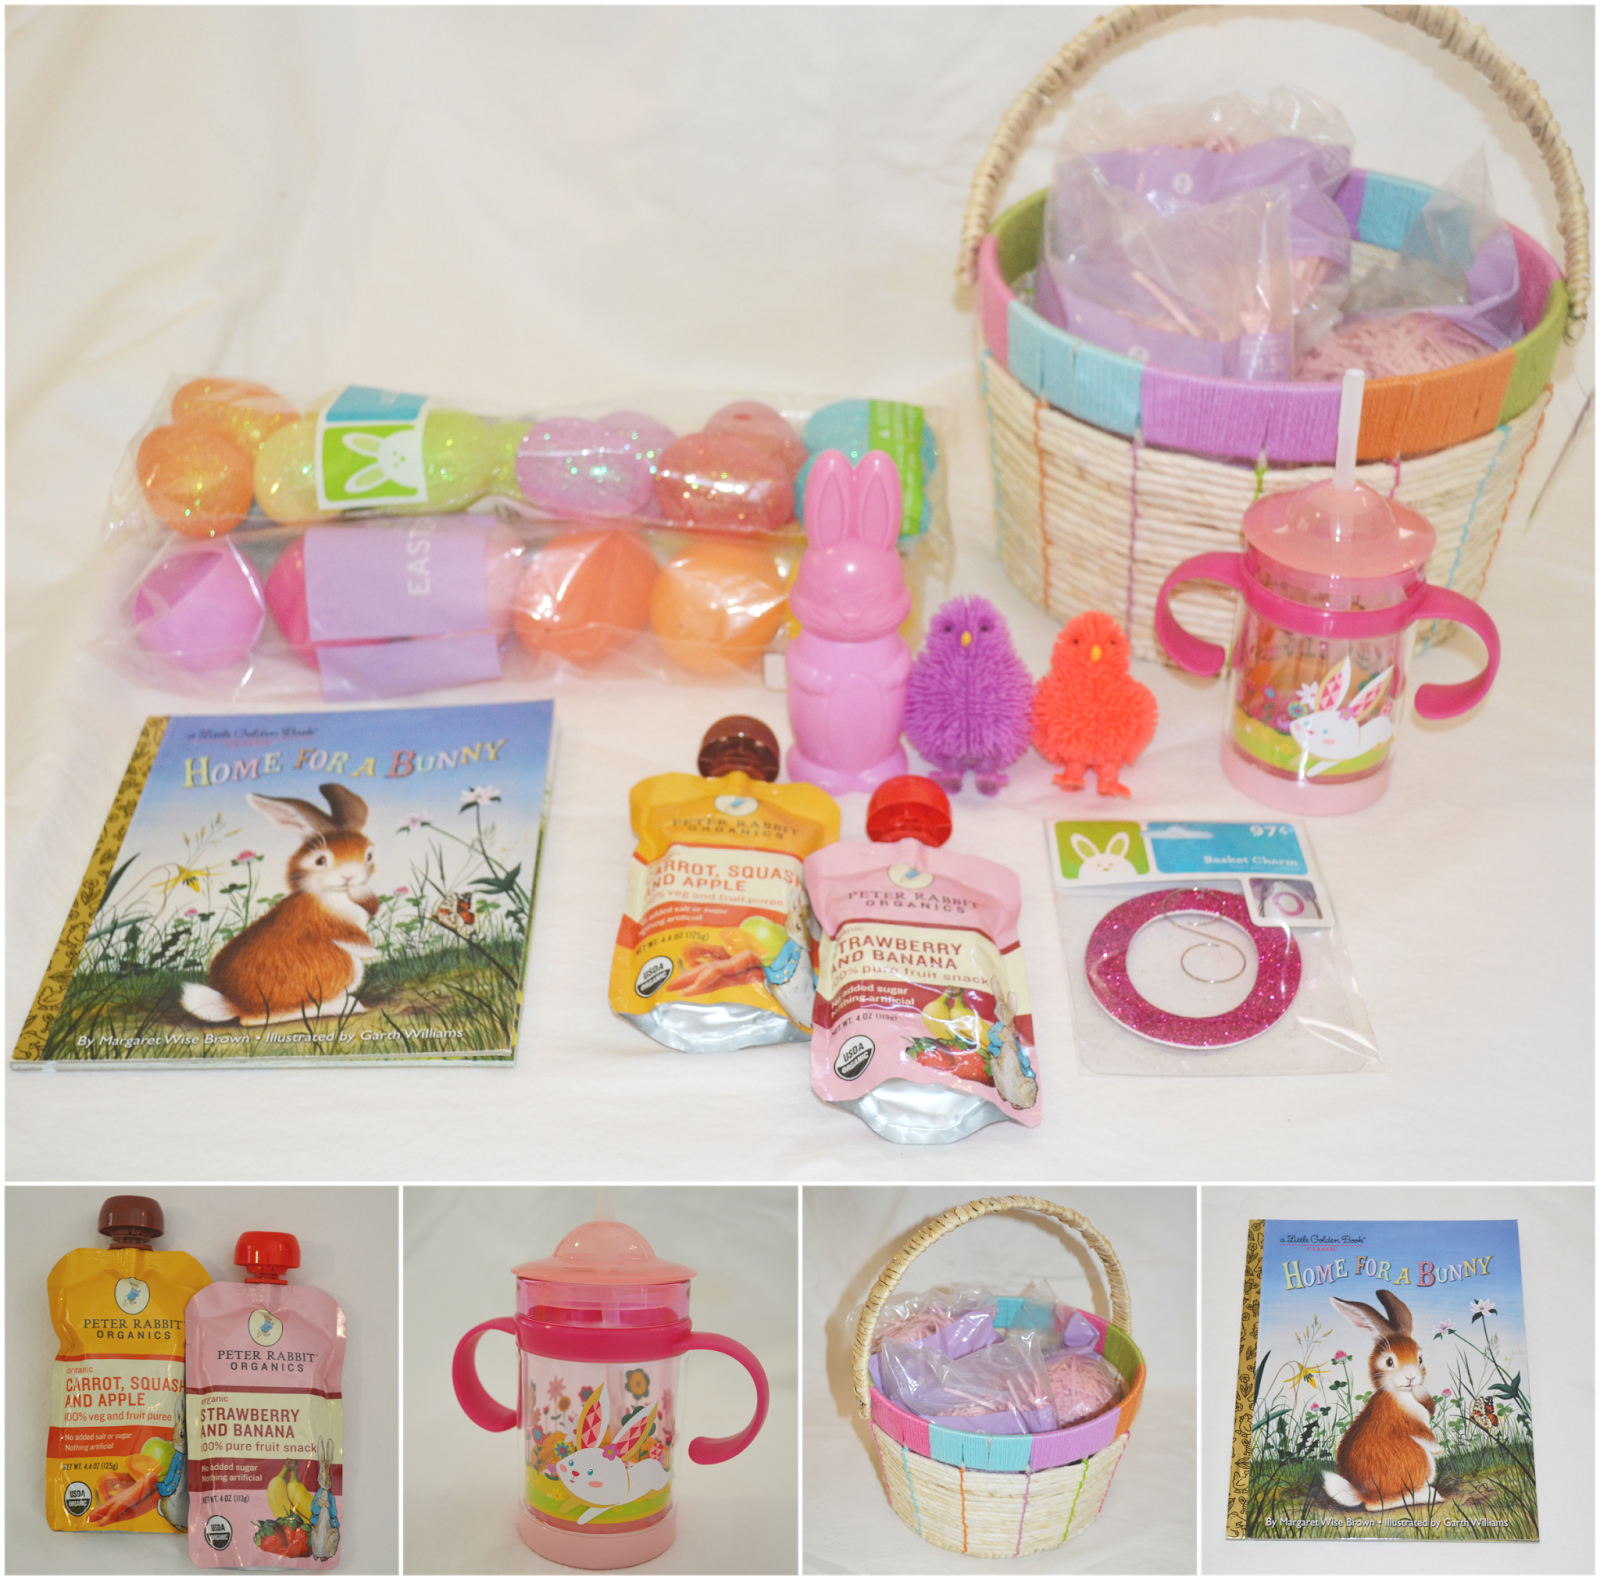 Easter basket for baby girl first easter basket ideas for baby girl dette cakes blog negle